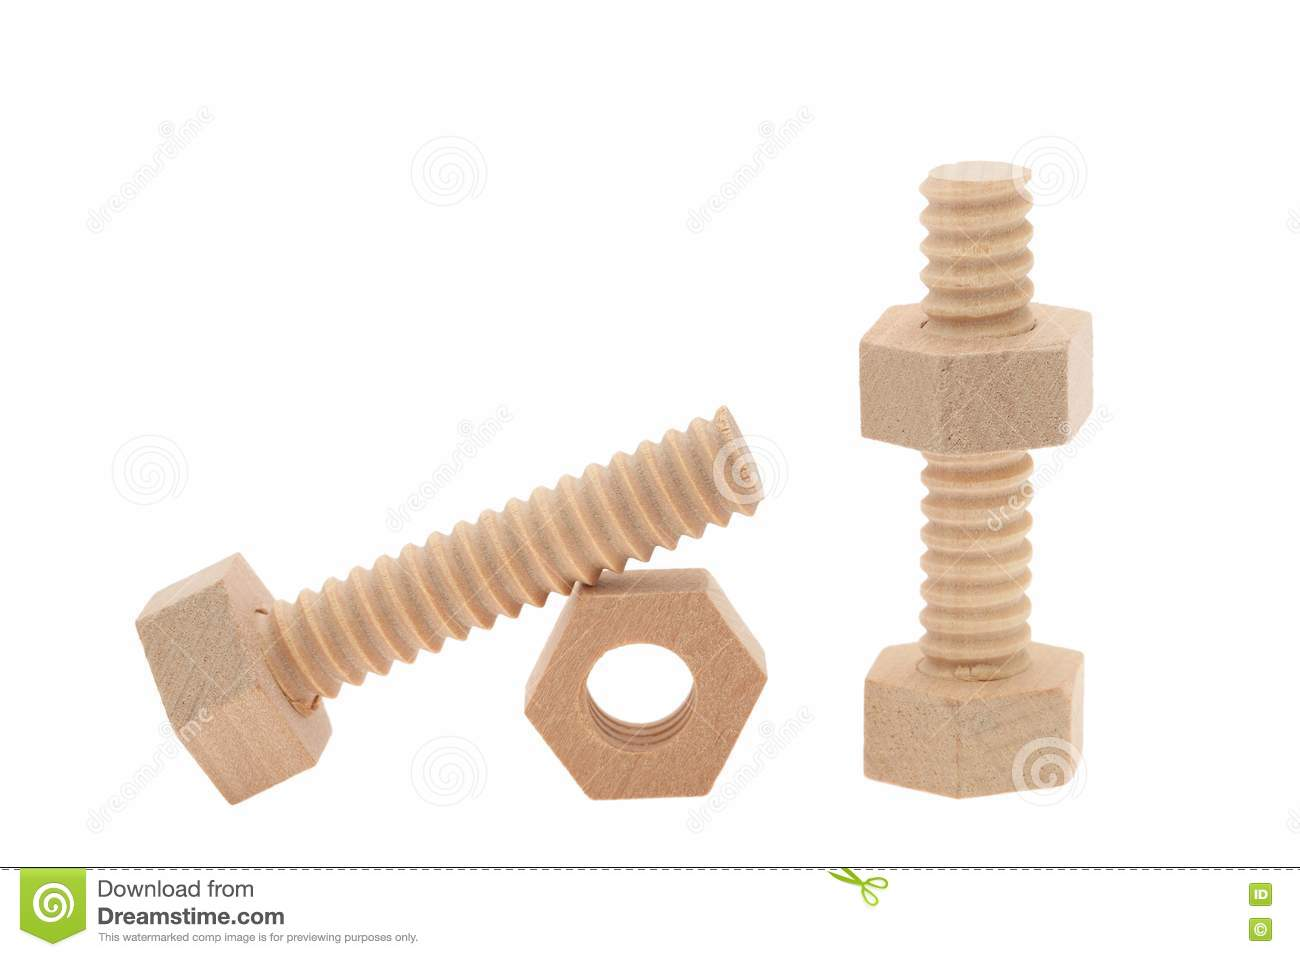 Wooden Nuts And Bolts Royalty Free Stock Images - Image: 24975009